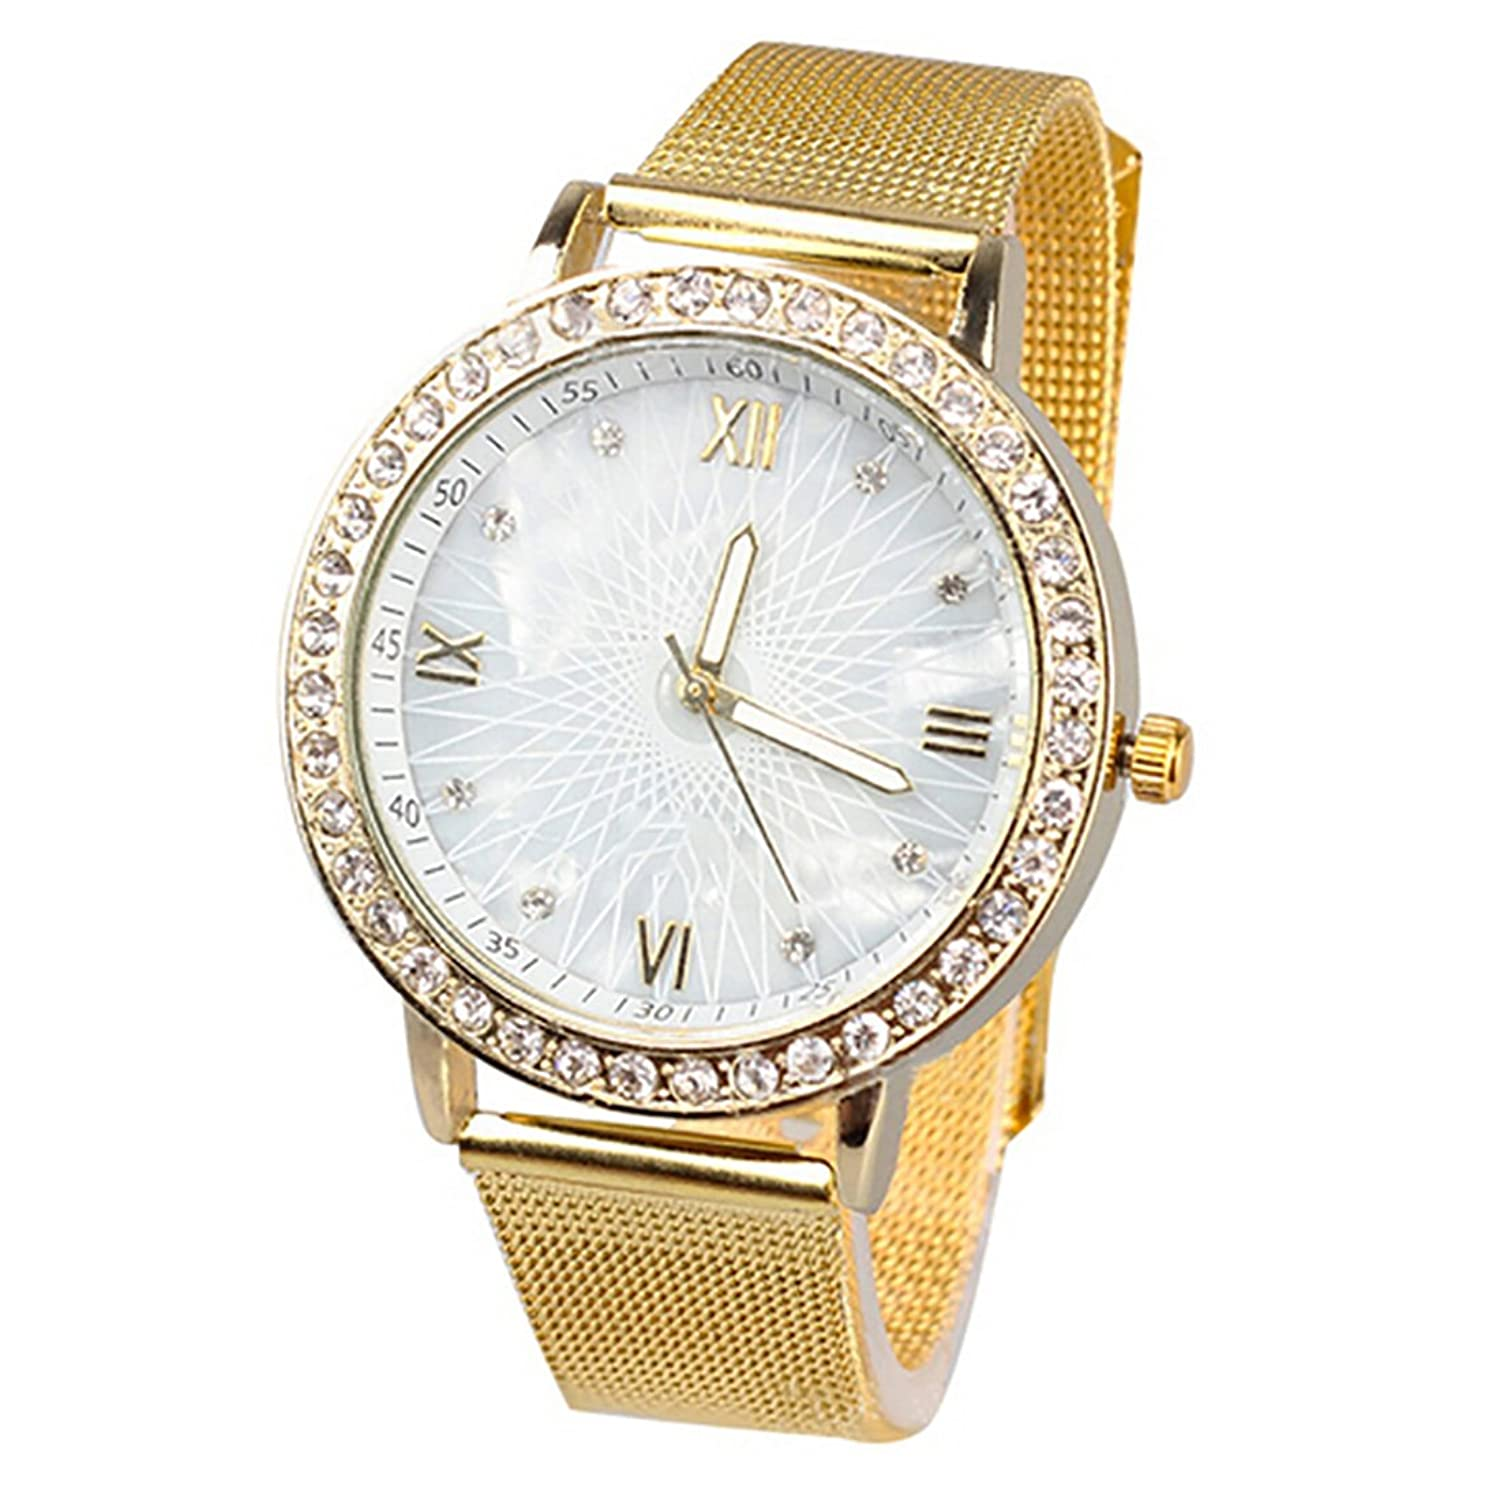 Amazon.com: 2016 WomenS Fashion Luxury Dress Watches Watch Ladies Rhinestone Casual Wristwatches Relogio Feminino Reloj Clock: Watches